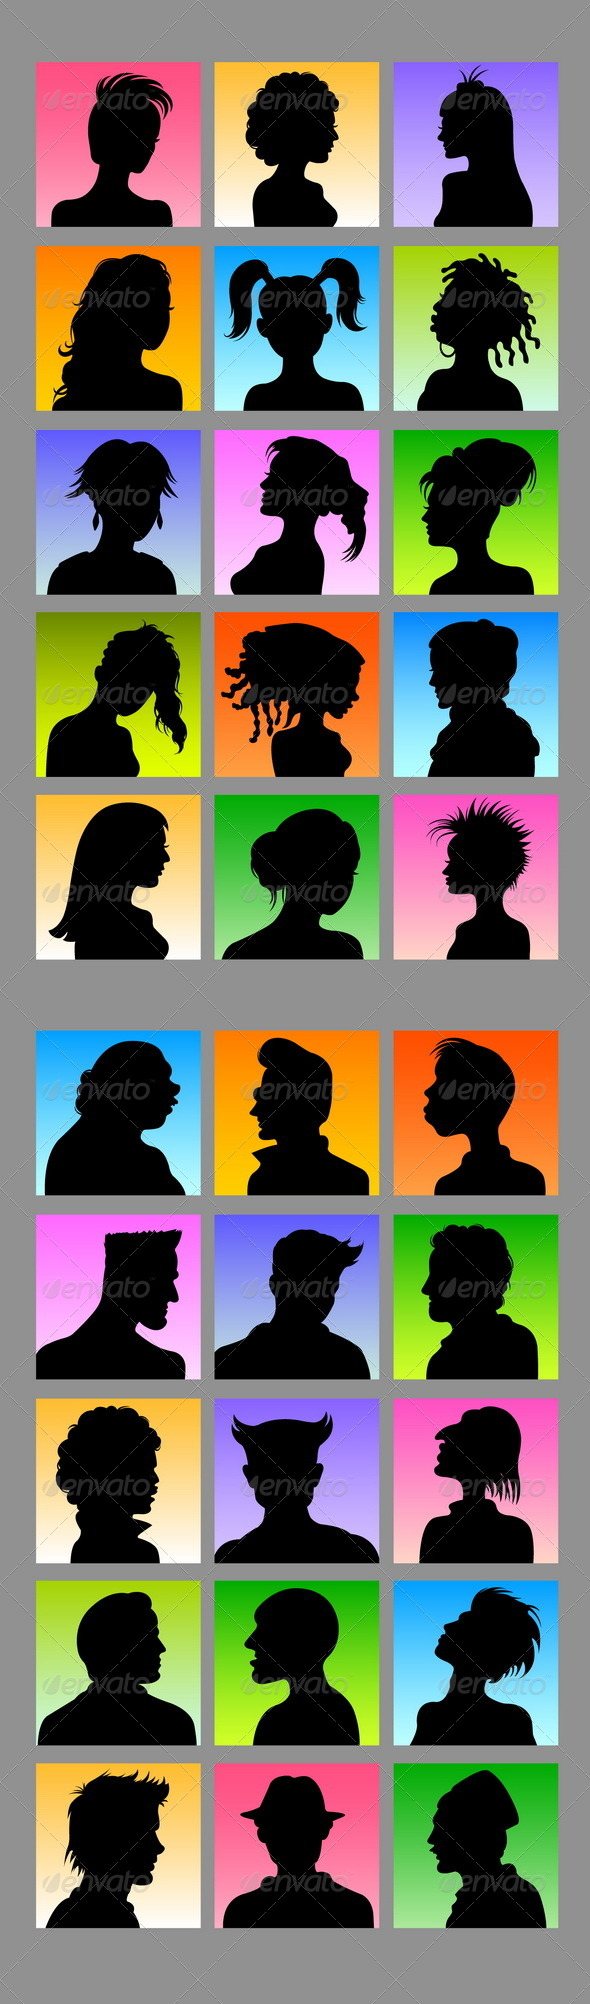 Avatars - 30 Female & Male Silhouettes - People Characters